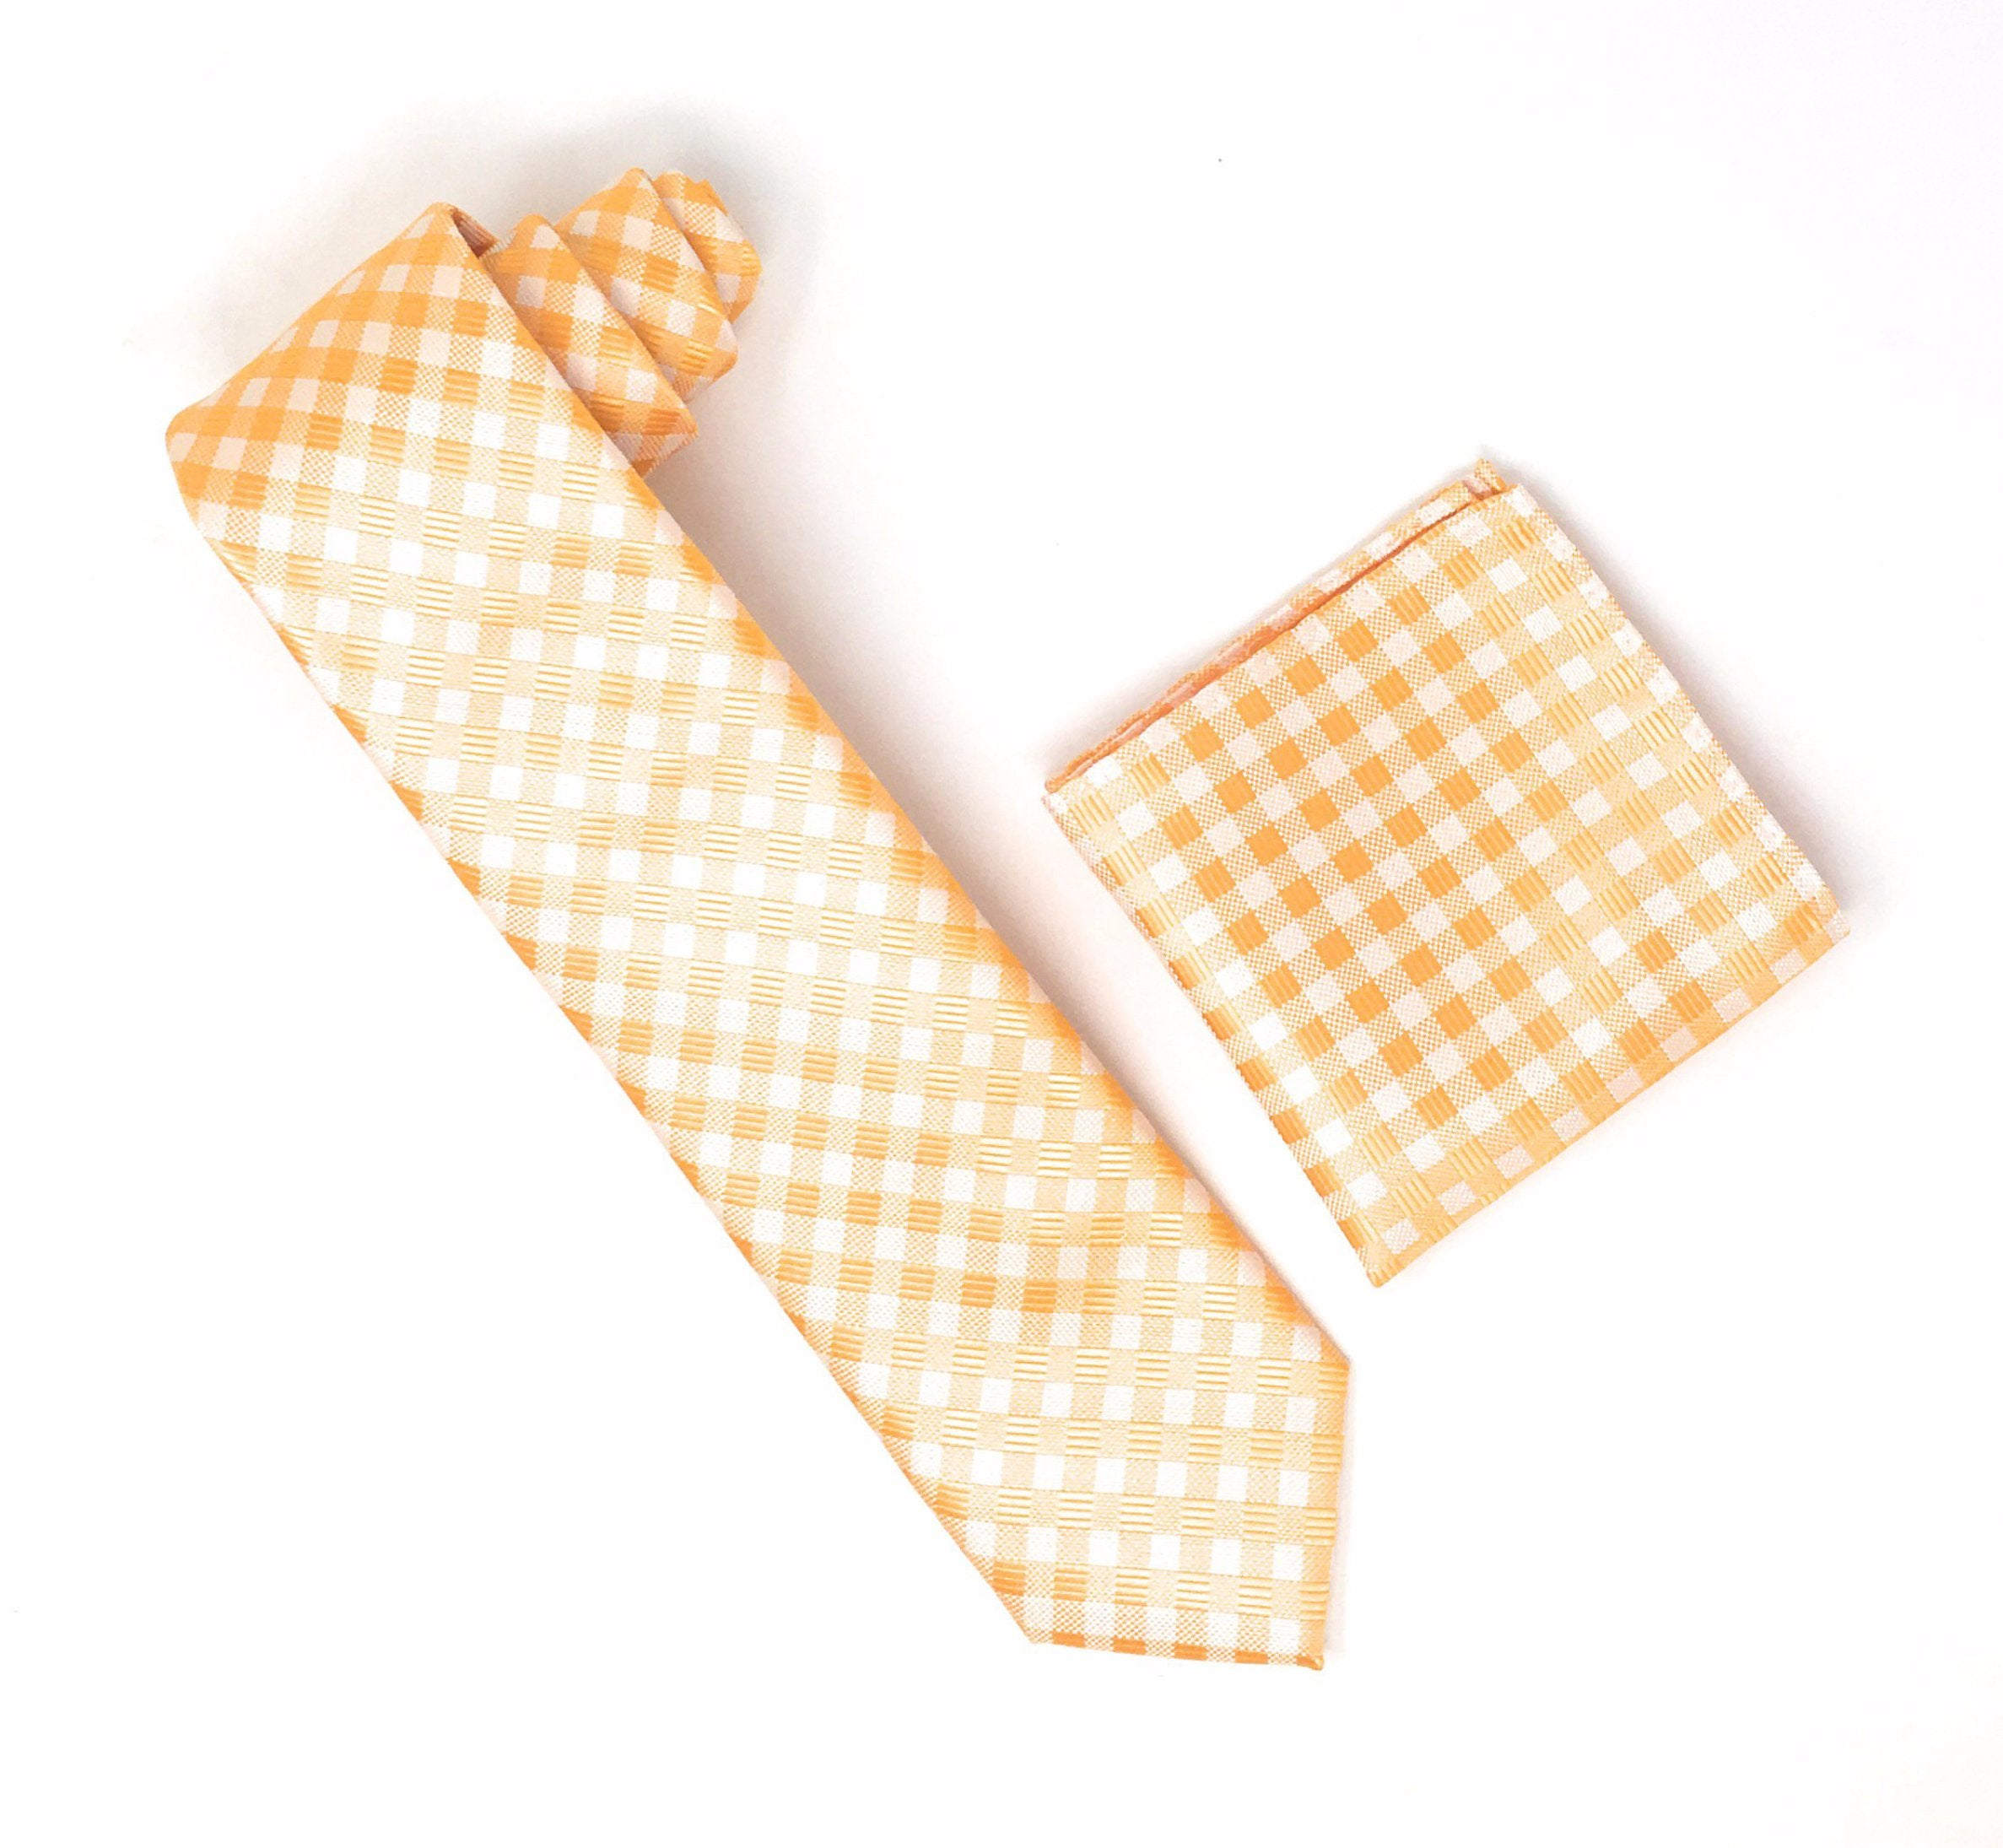 341a0e009d49 WTH545_Gold_and_Silver_Striped_Silk_Tie_Set_With_Matching_Square_87db7f39-ce64-4c72-9650-8e83427a78db.JPG?v=1548905123